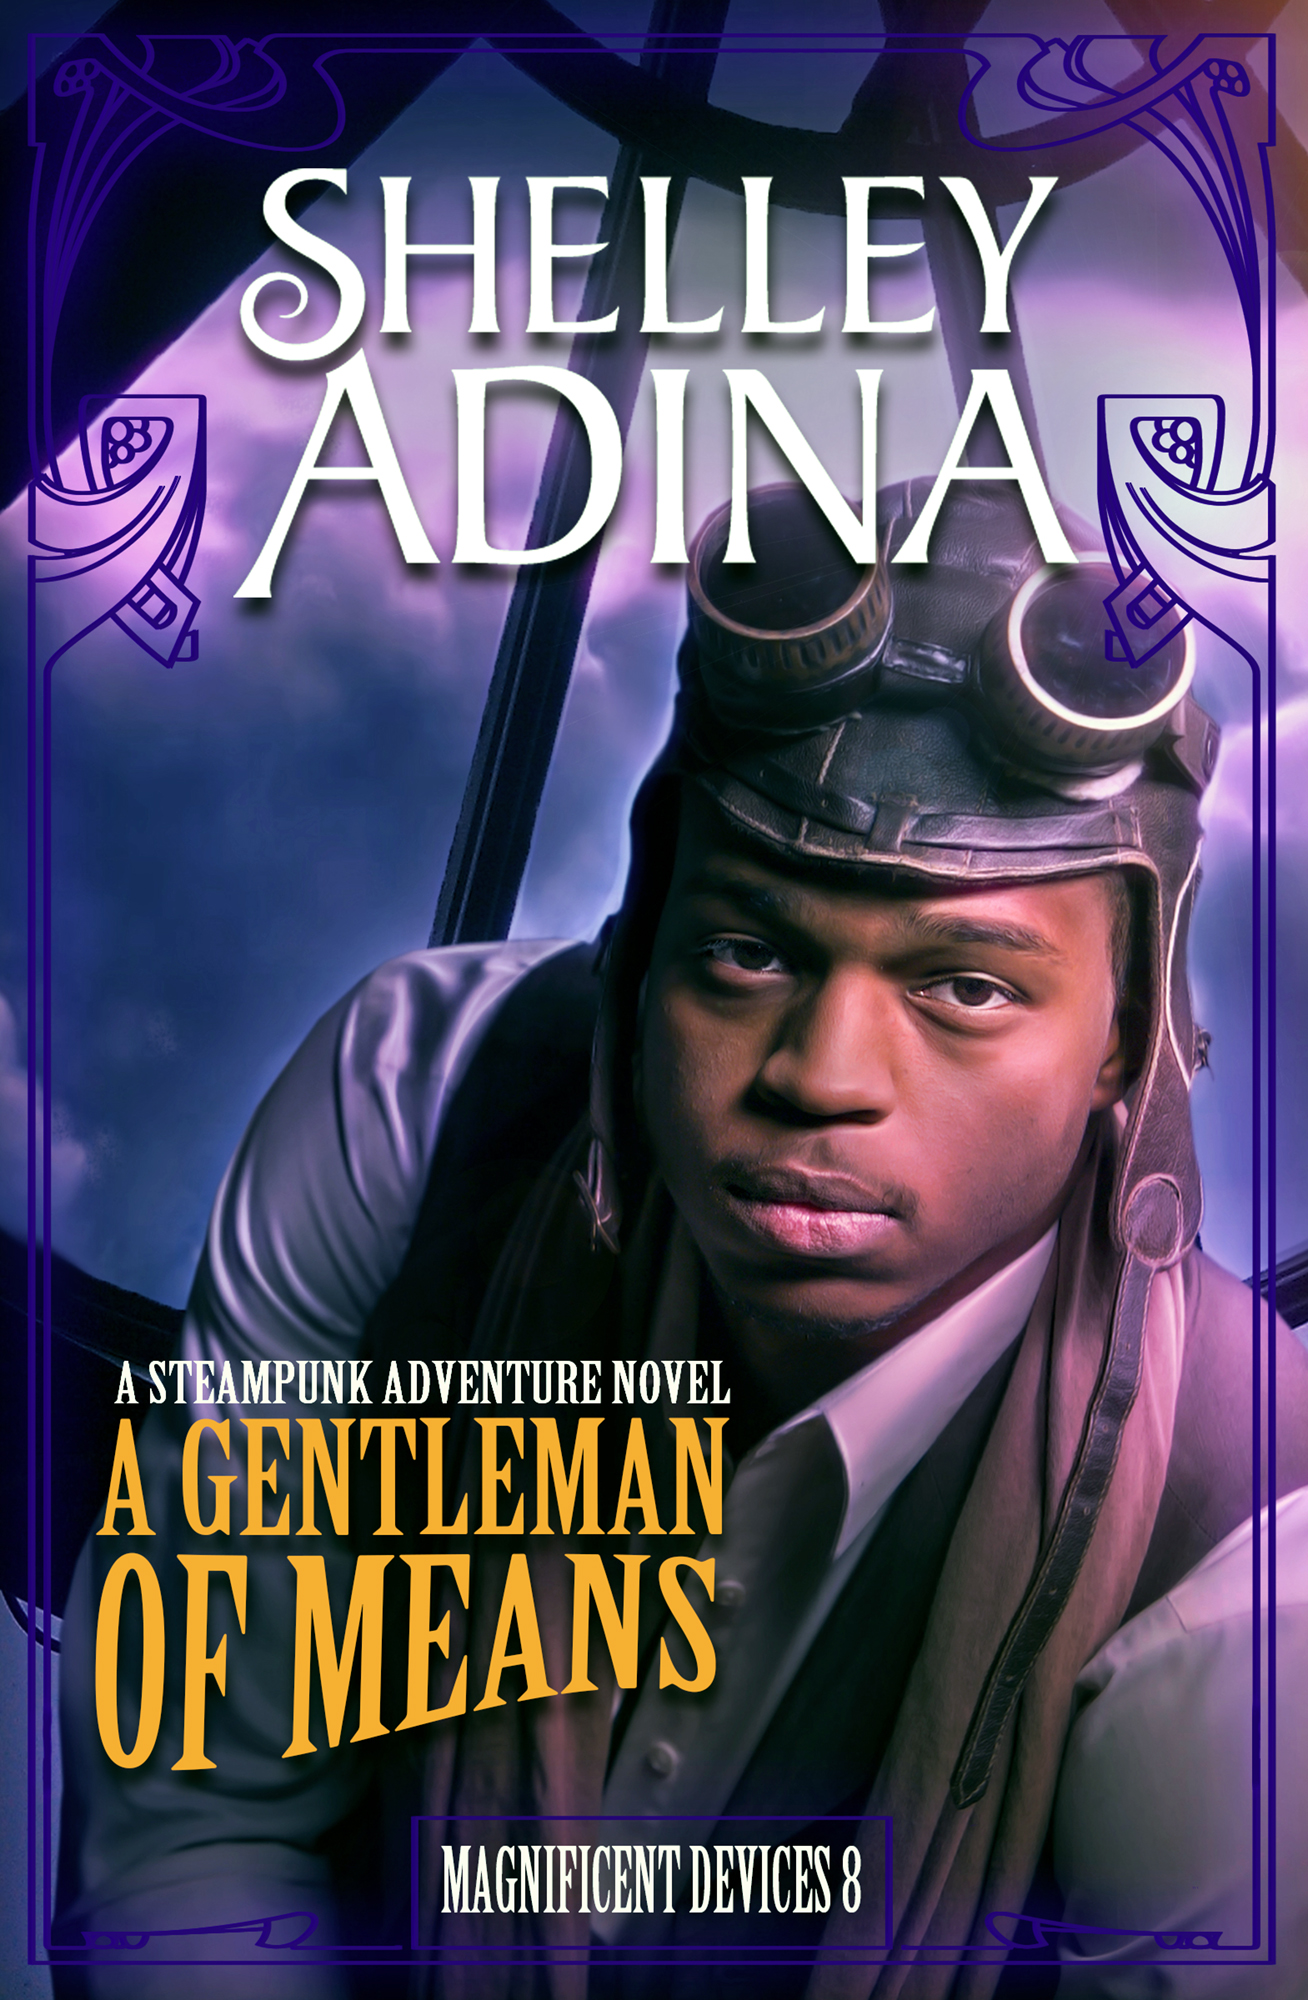 A Gentleman of Means by Shelley Adina